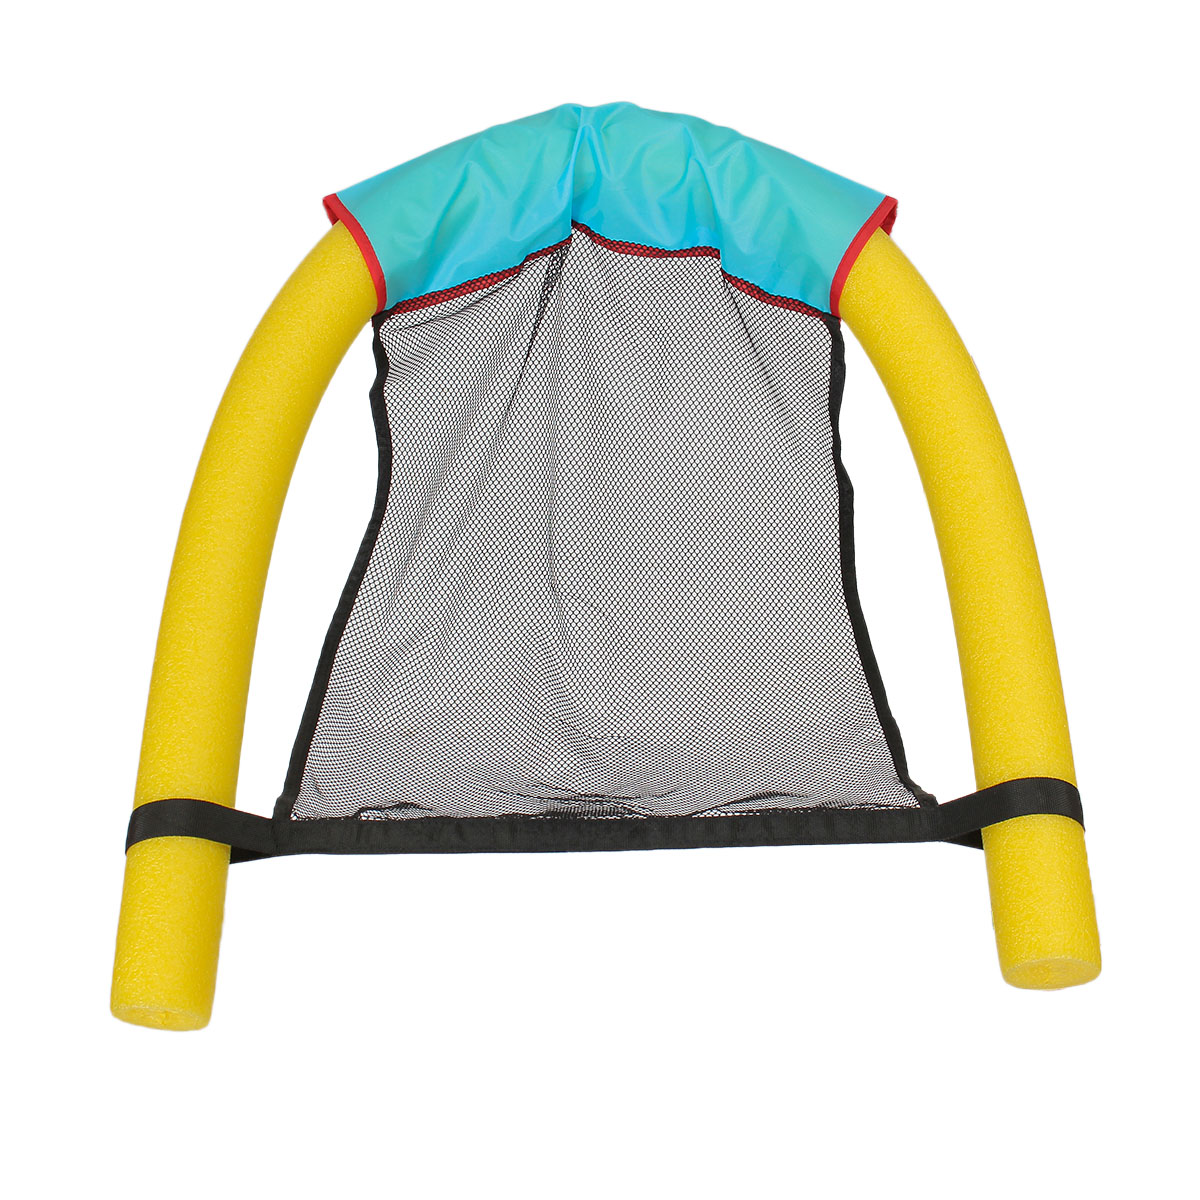 Floating Chairs Swimming Pool Water Floating Chair Seat Bed Buoyancy Float